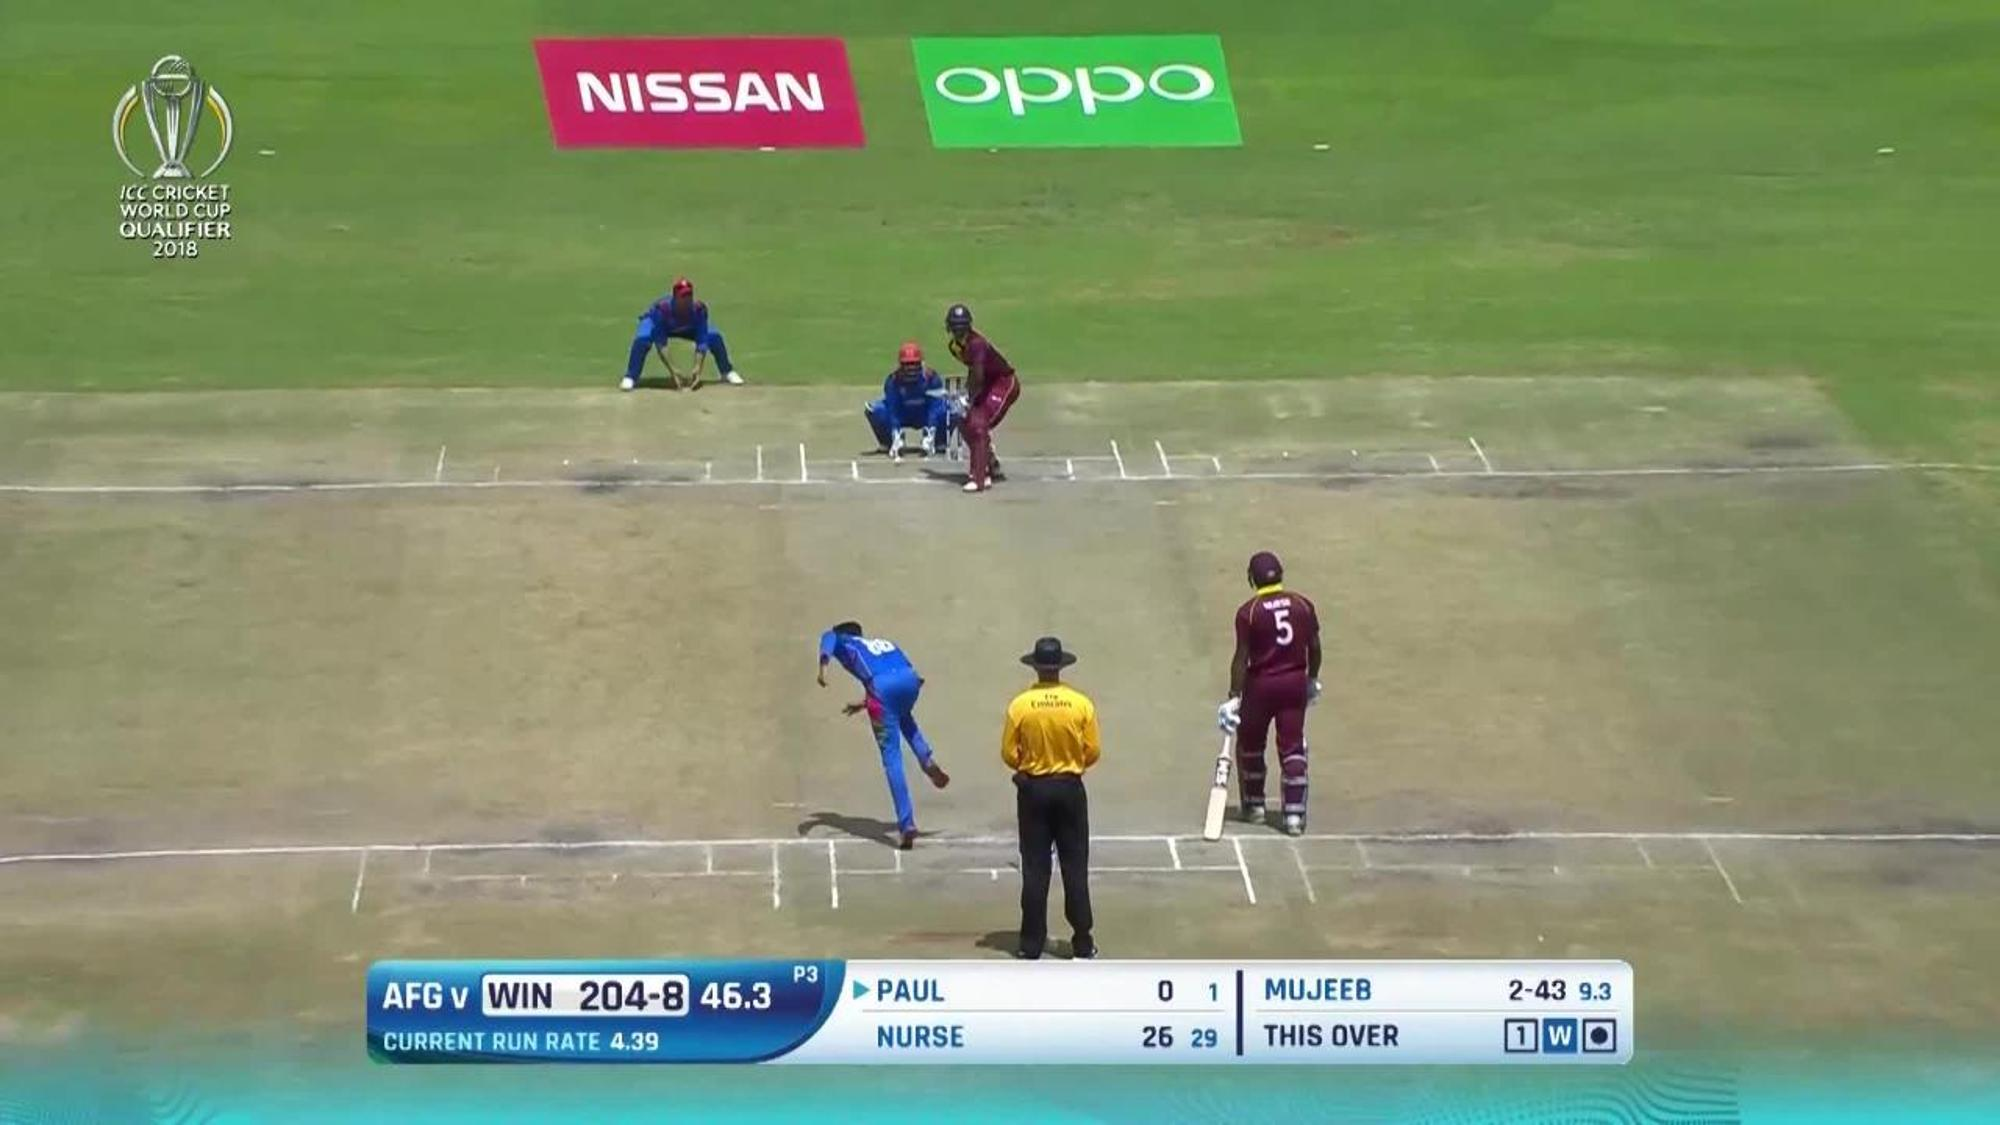 Mujeeb Ur Rahman's 4/43 against West Indies in the CWCQ final